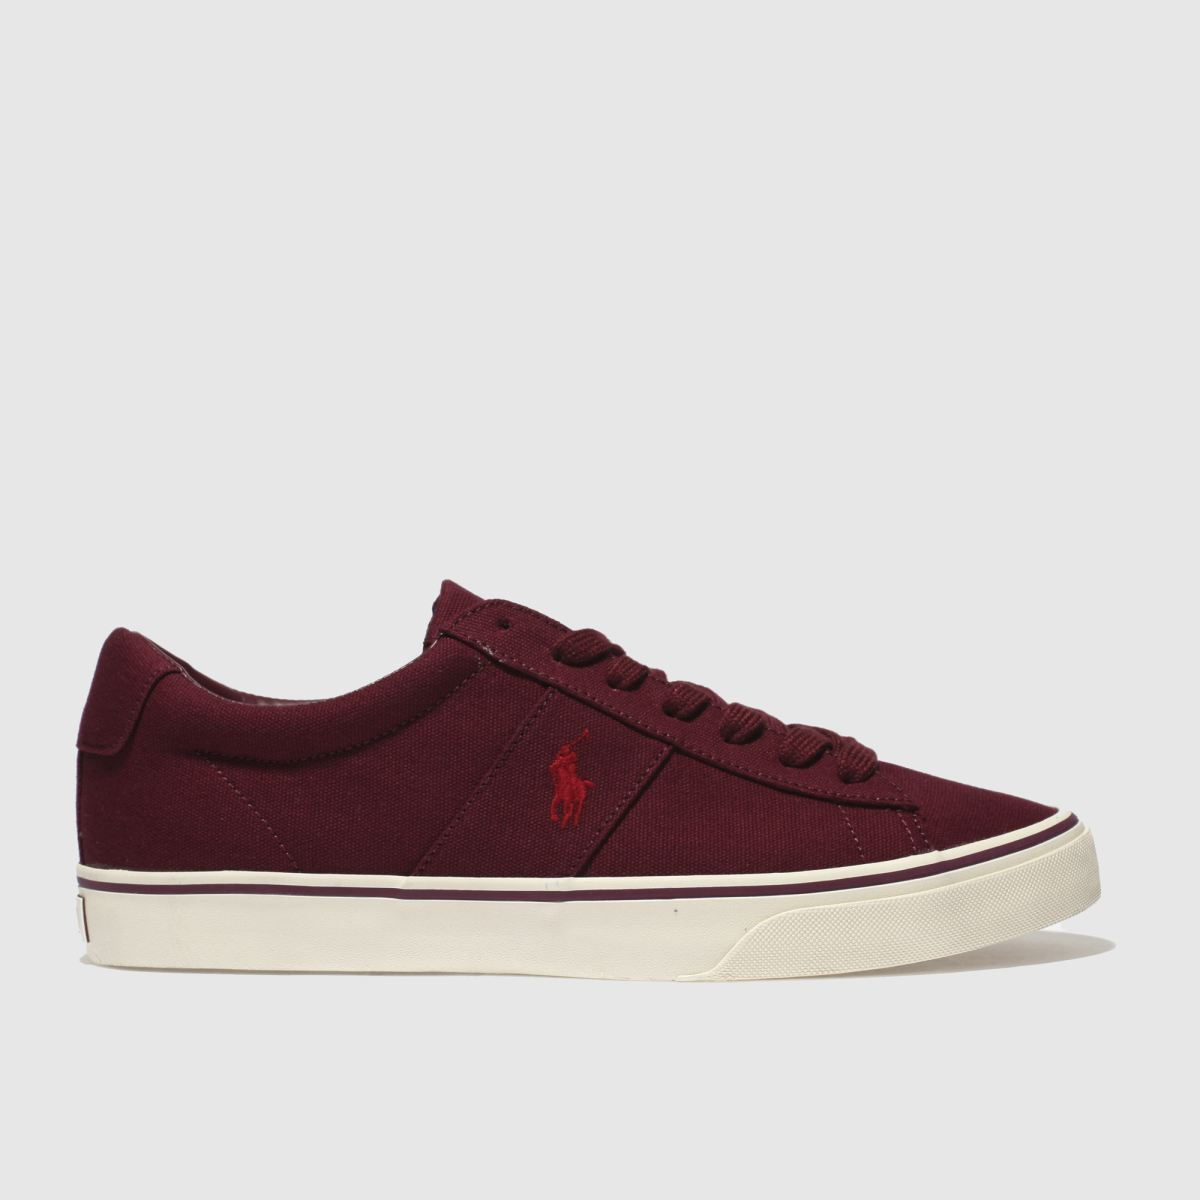 Polo Ralph Lauren Burgundy Sayer Ne Trainers